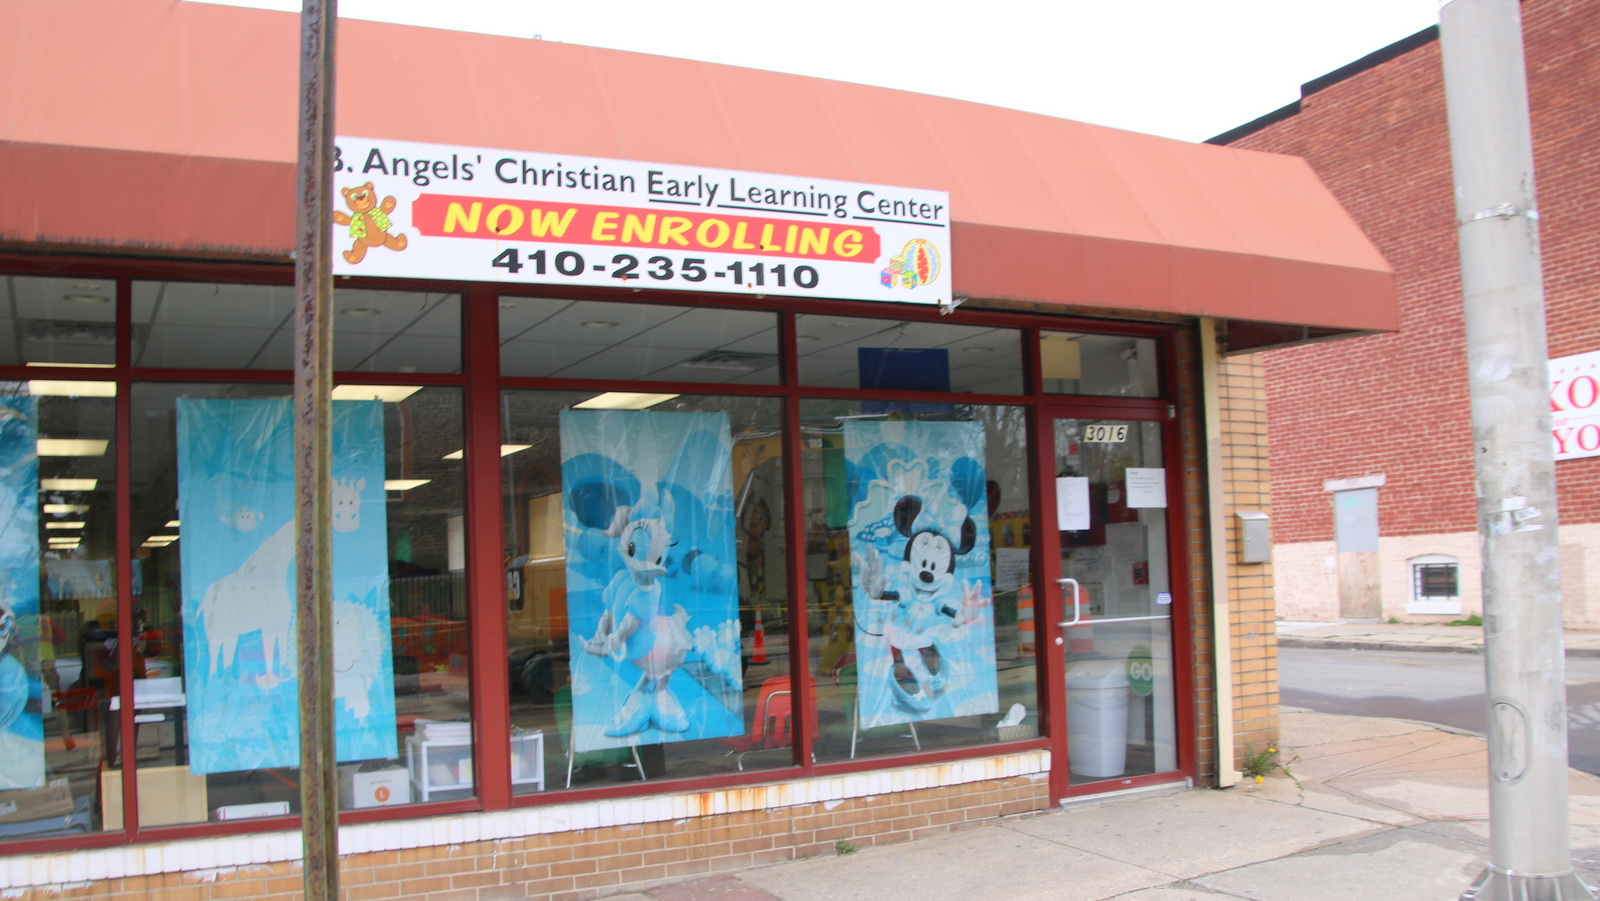 The owners of B. Angels Christian Early Learning Center on Gerenmount Avenue are hoping to open on Monday. (Fern Shen)